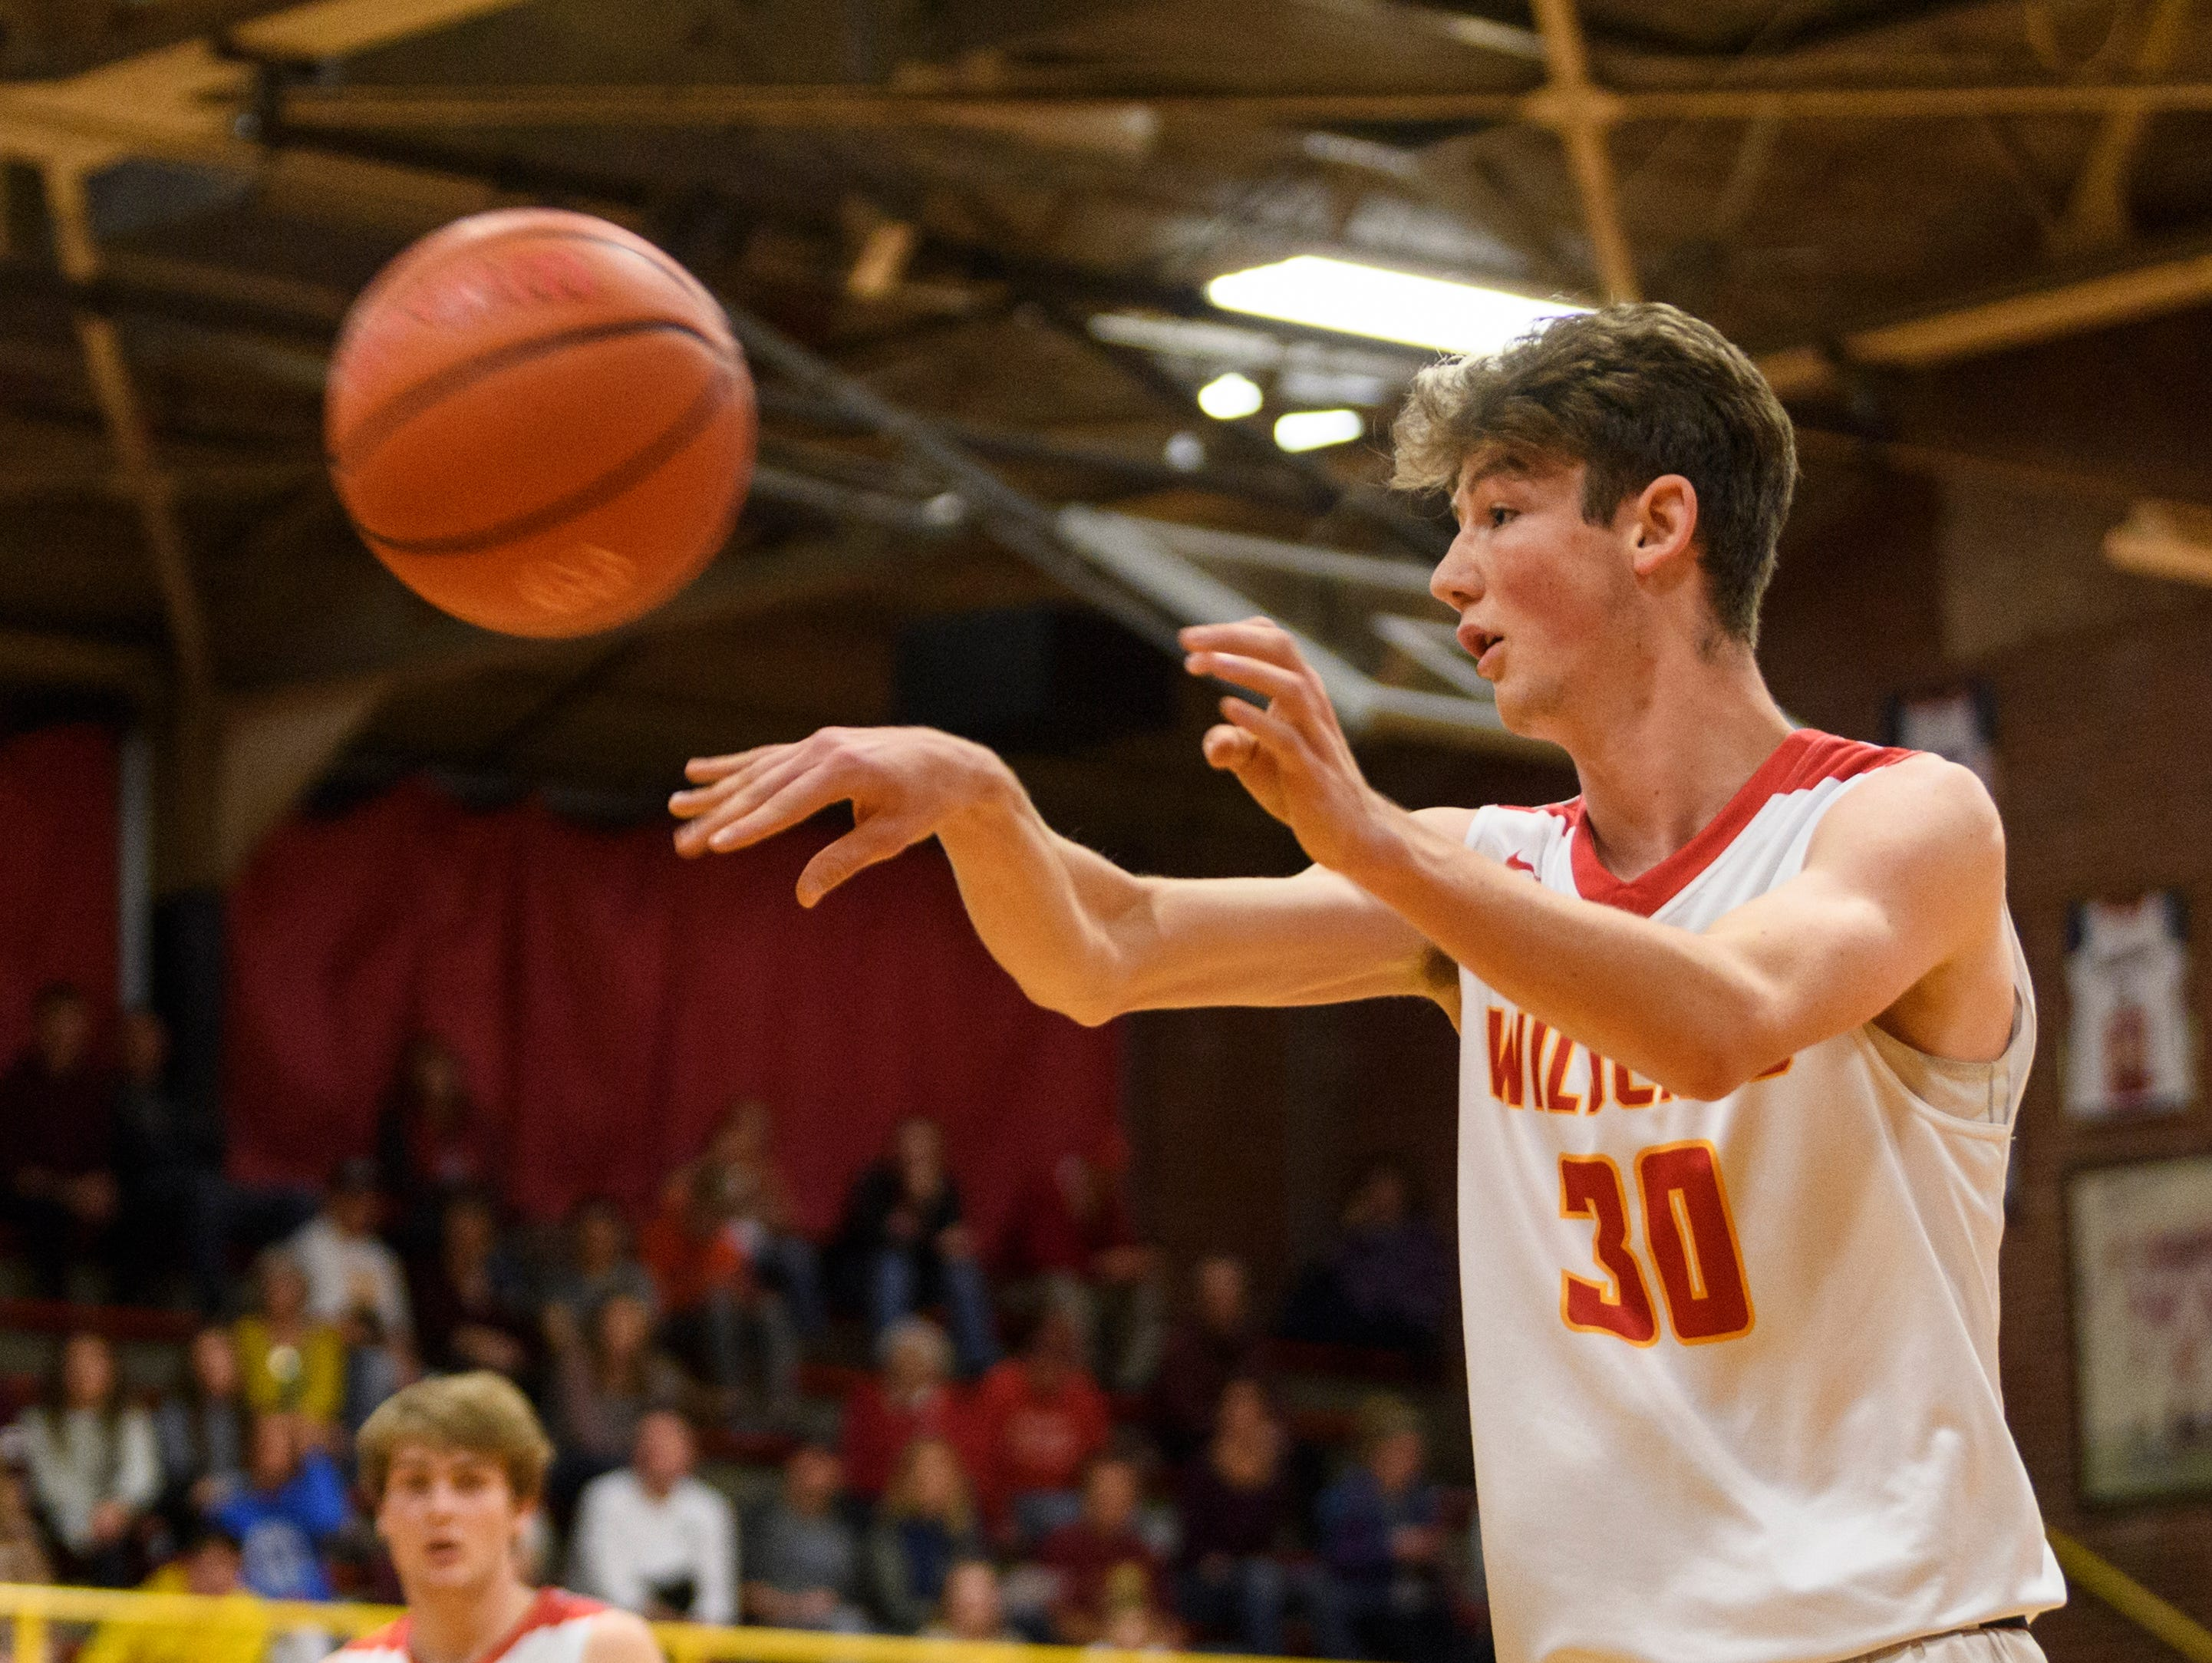 Mater Dei's Zach Schoenstien (30) passes to a teammate during the first quarter against the Boonville Pioneers at Mater Dei High School in Evansville, Ind., Saturday, Jan. 5, 2019. The Wildcats defeated the Pioneers, 93-65.